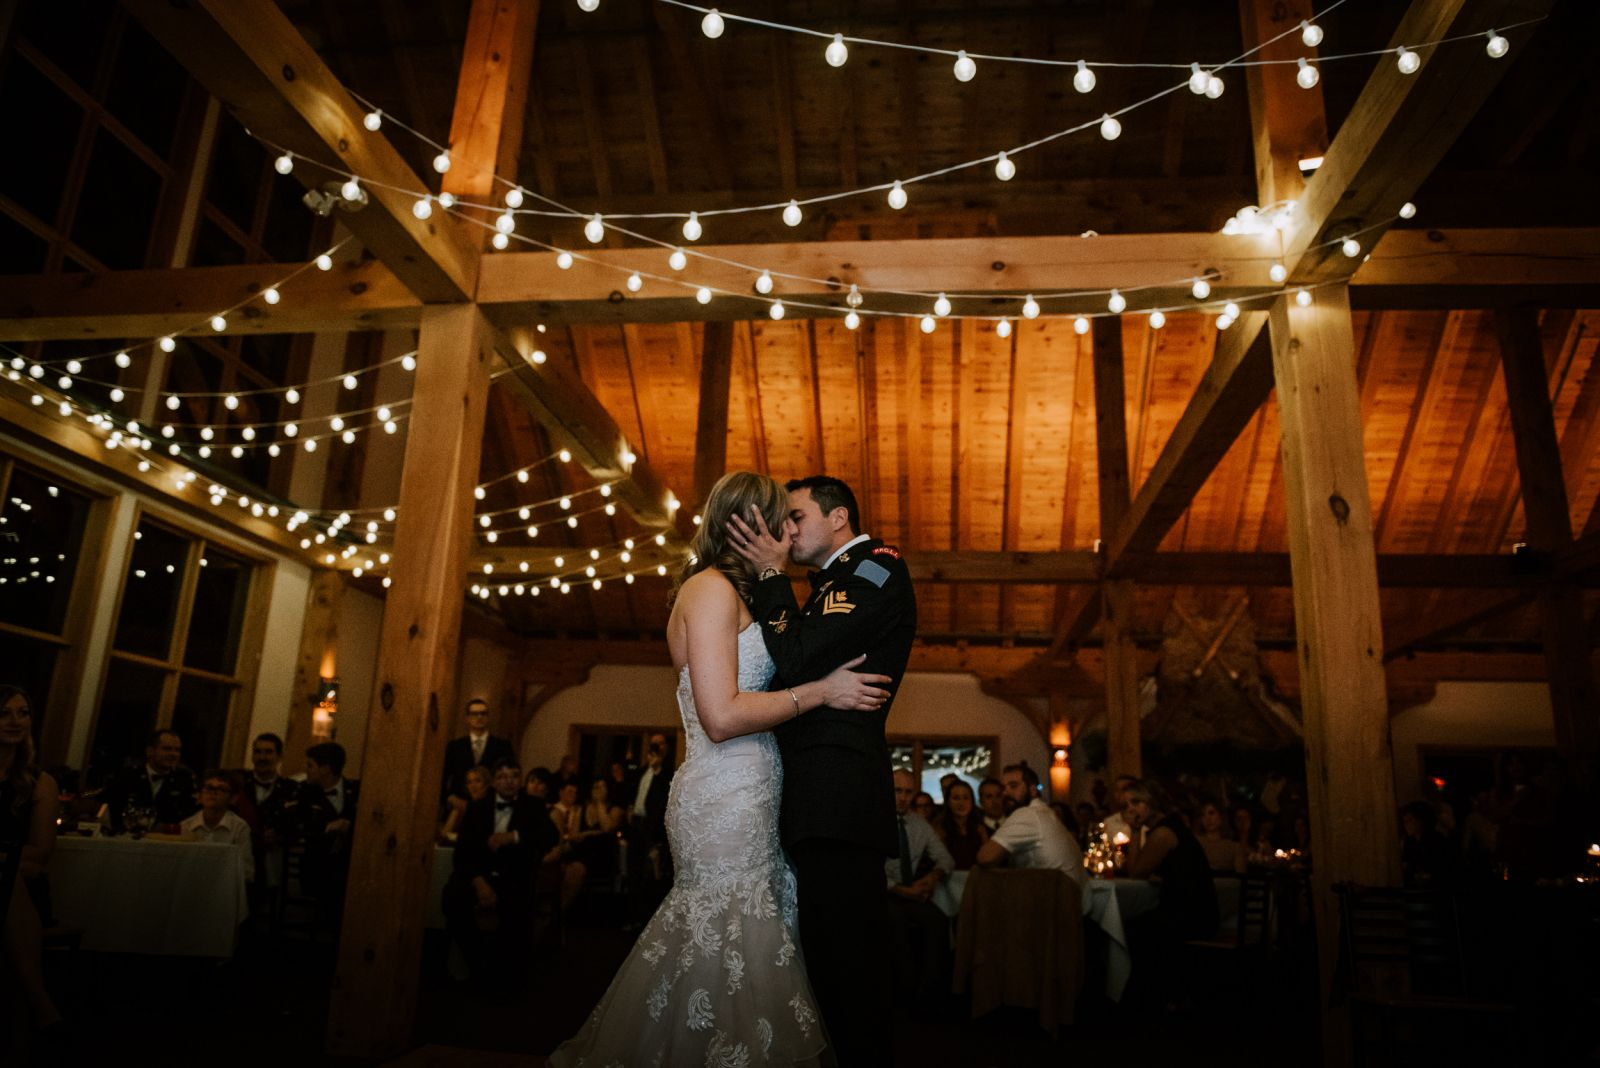 bride and groom sharing first dance and first kiss